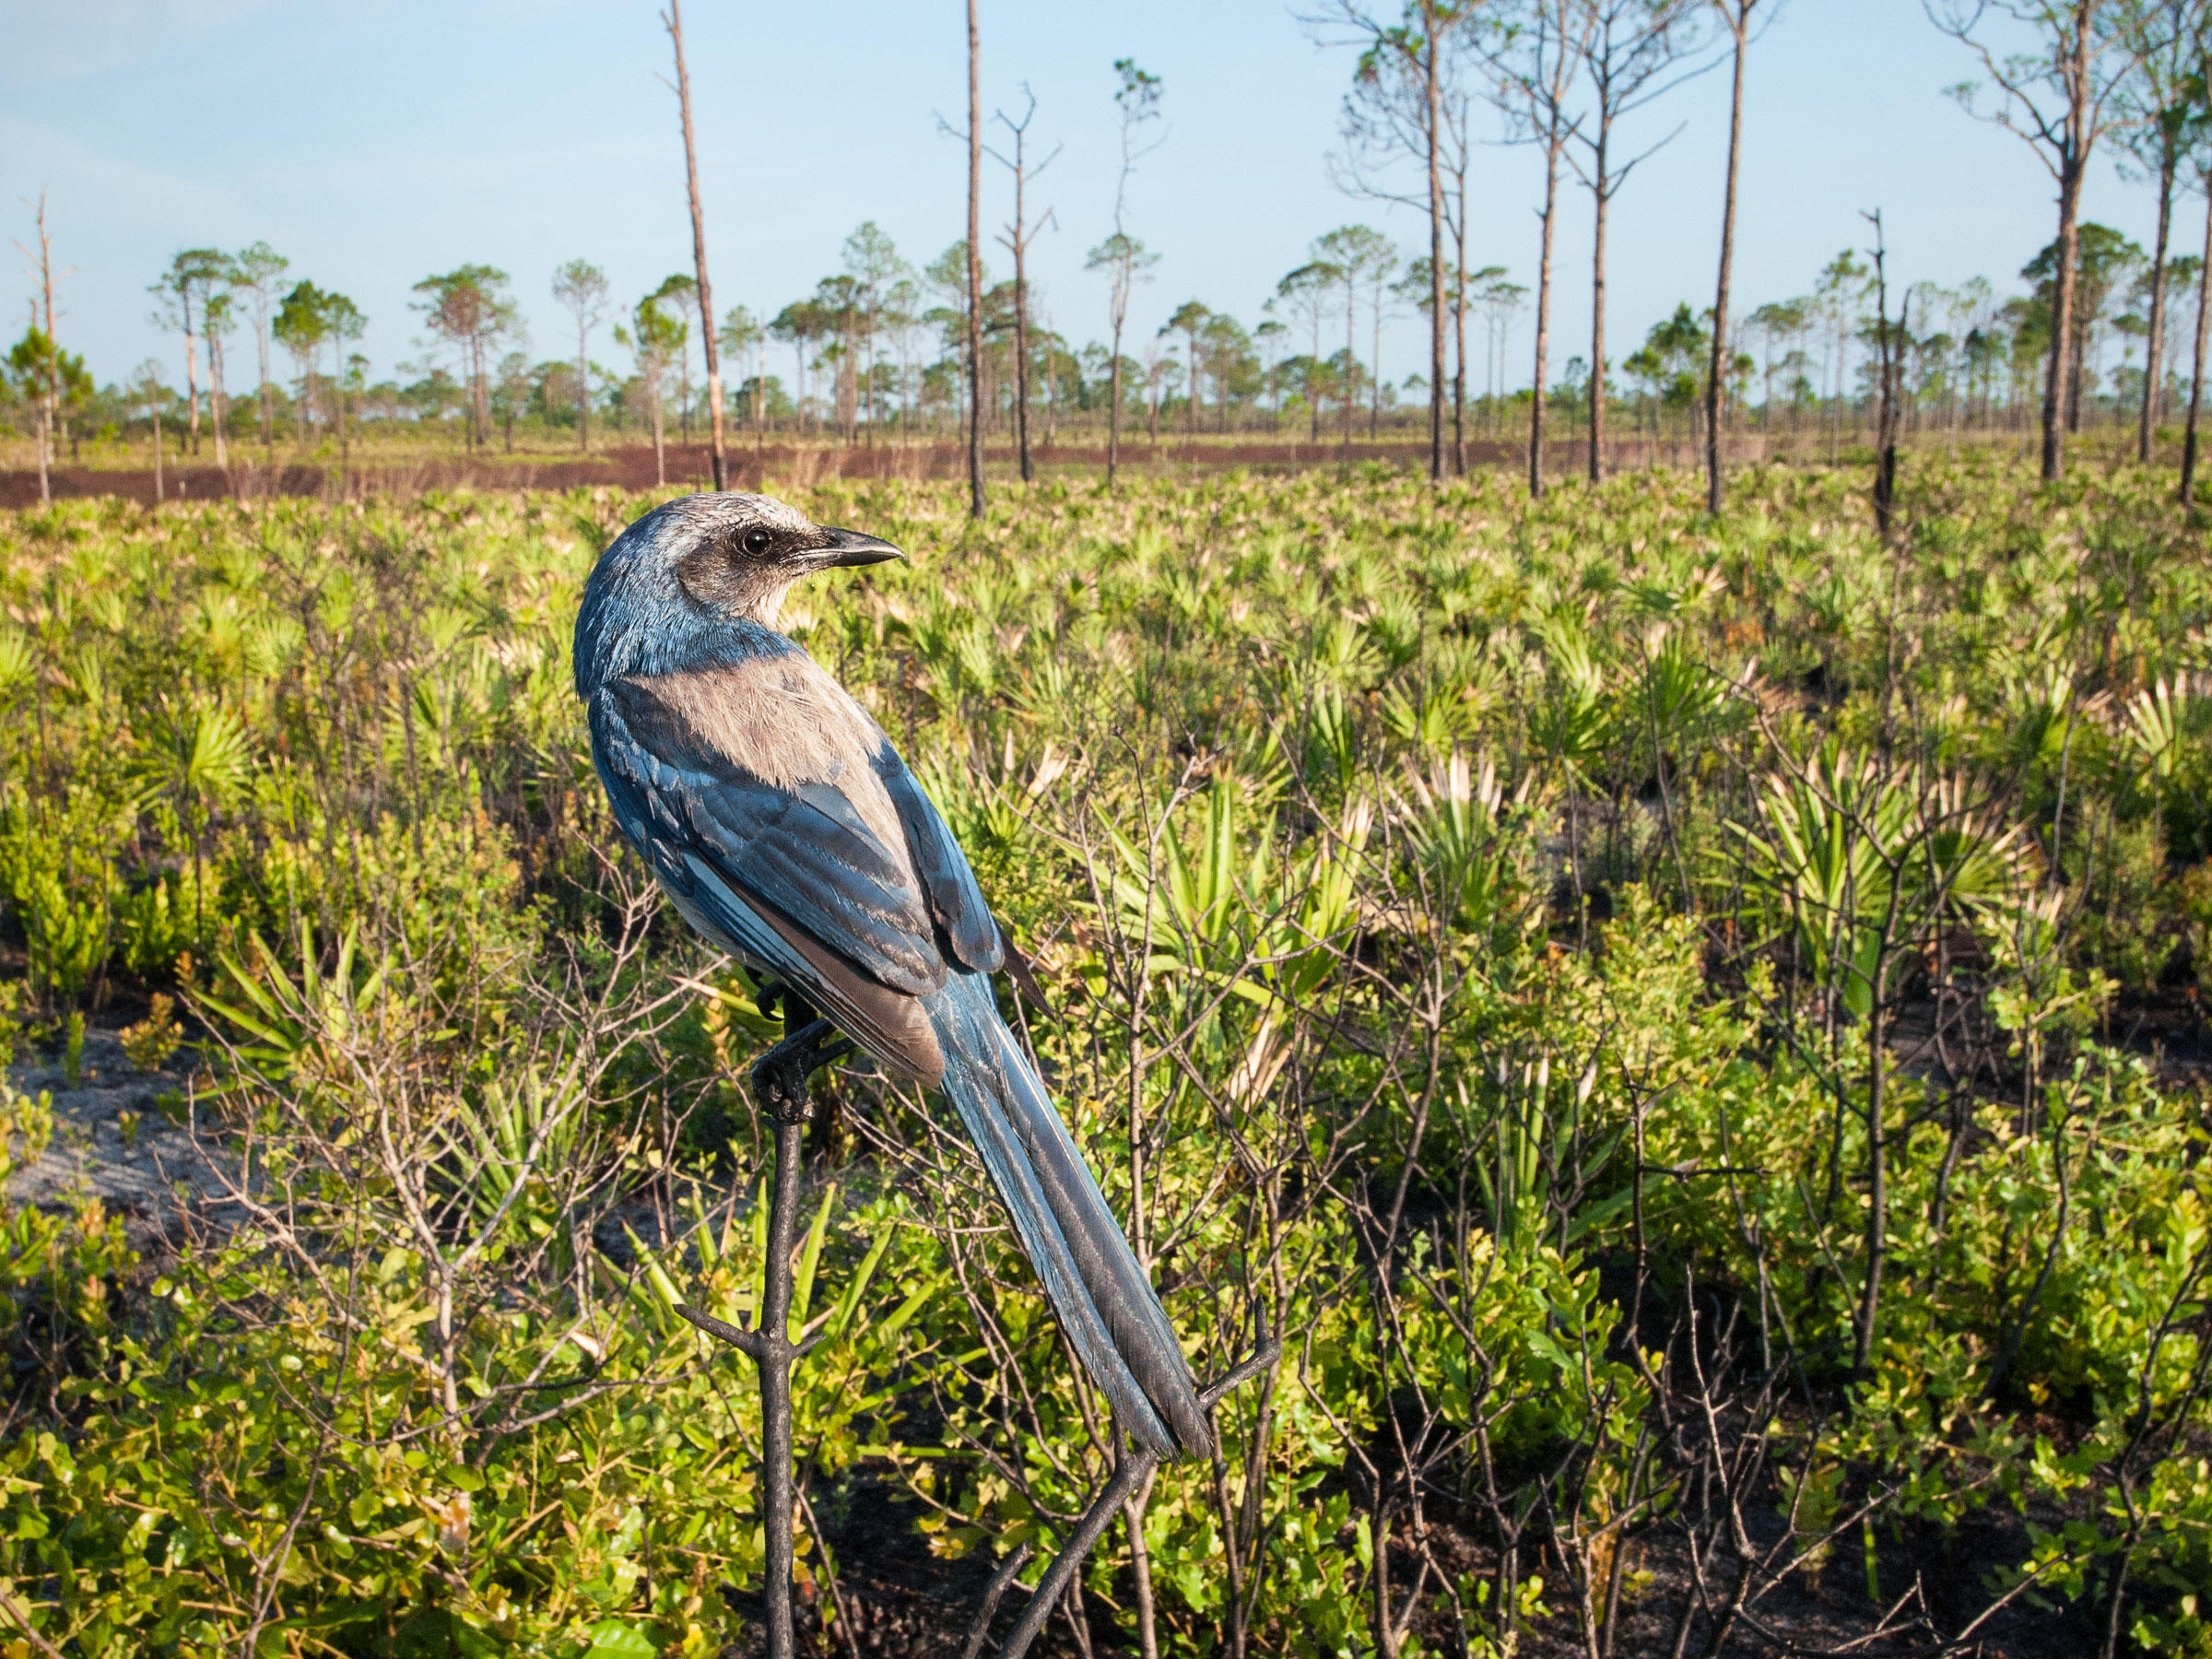 Florida Scrub-Jays prefer low and open scrub habitats that are maintained by frequent fire. But these limited landscapes are becoming harder to come by, thanks to climate change. Reed Bowman